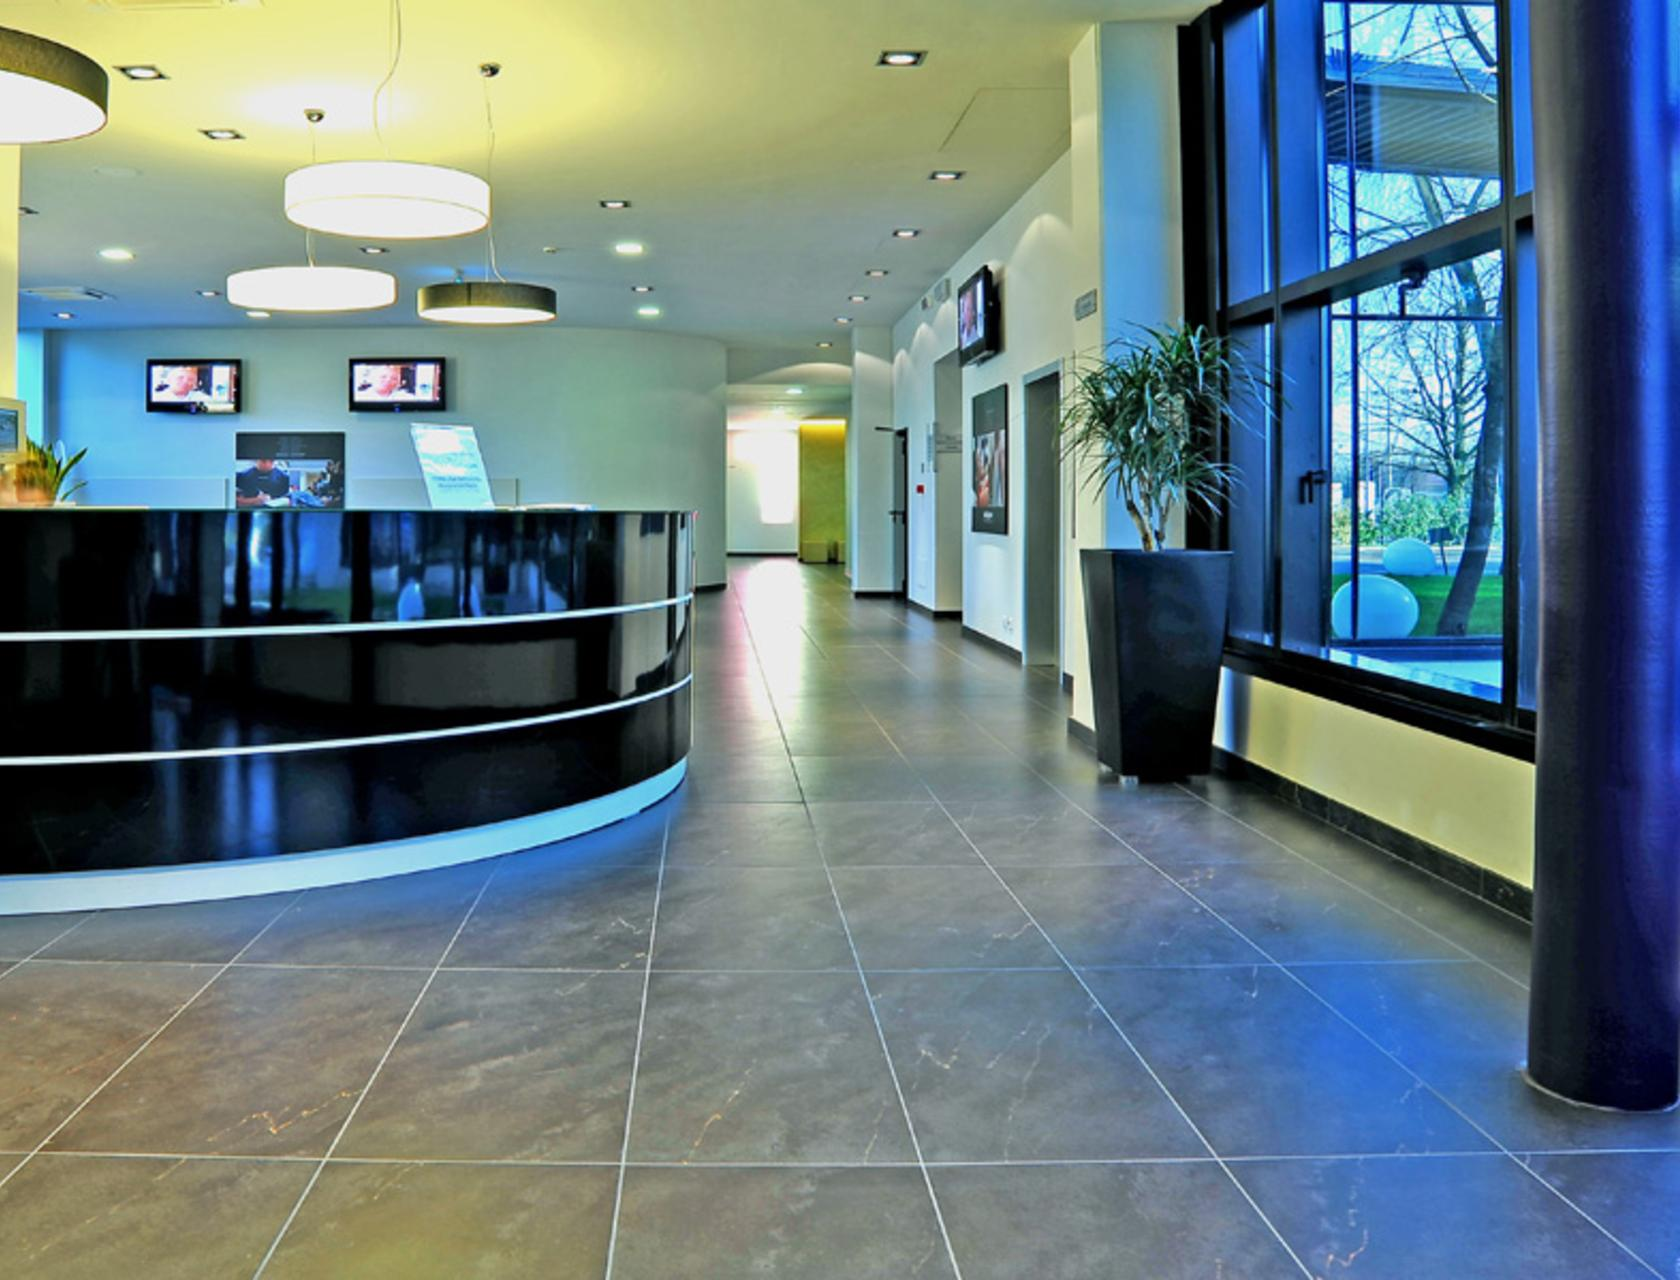 Pala space centro fitness hotel spa wellness ariostea for Centro fitness